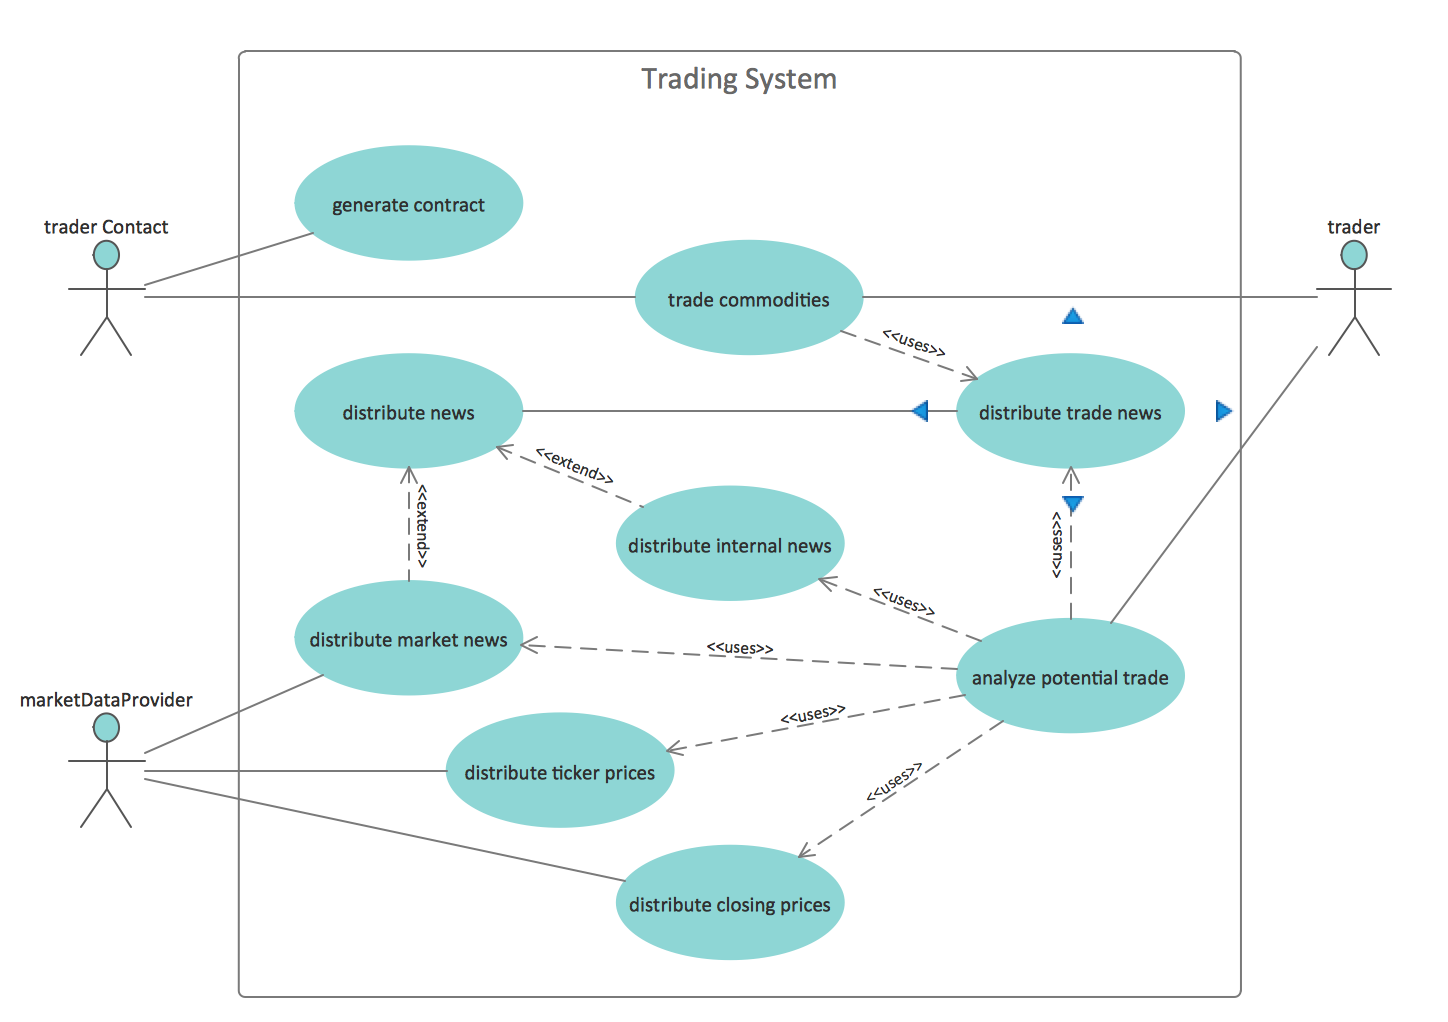 Trading system structure